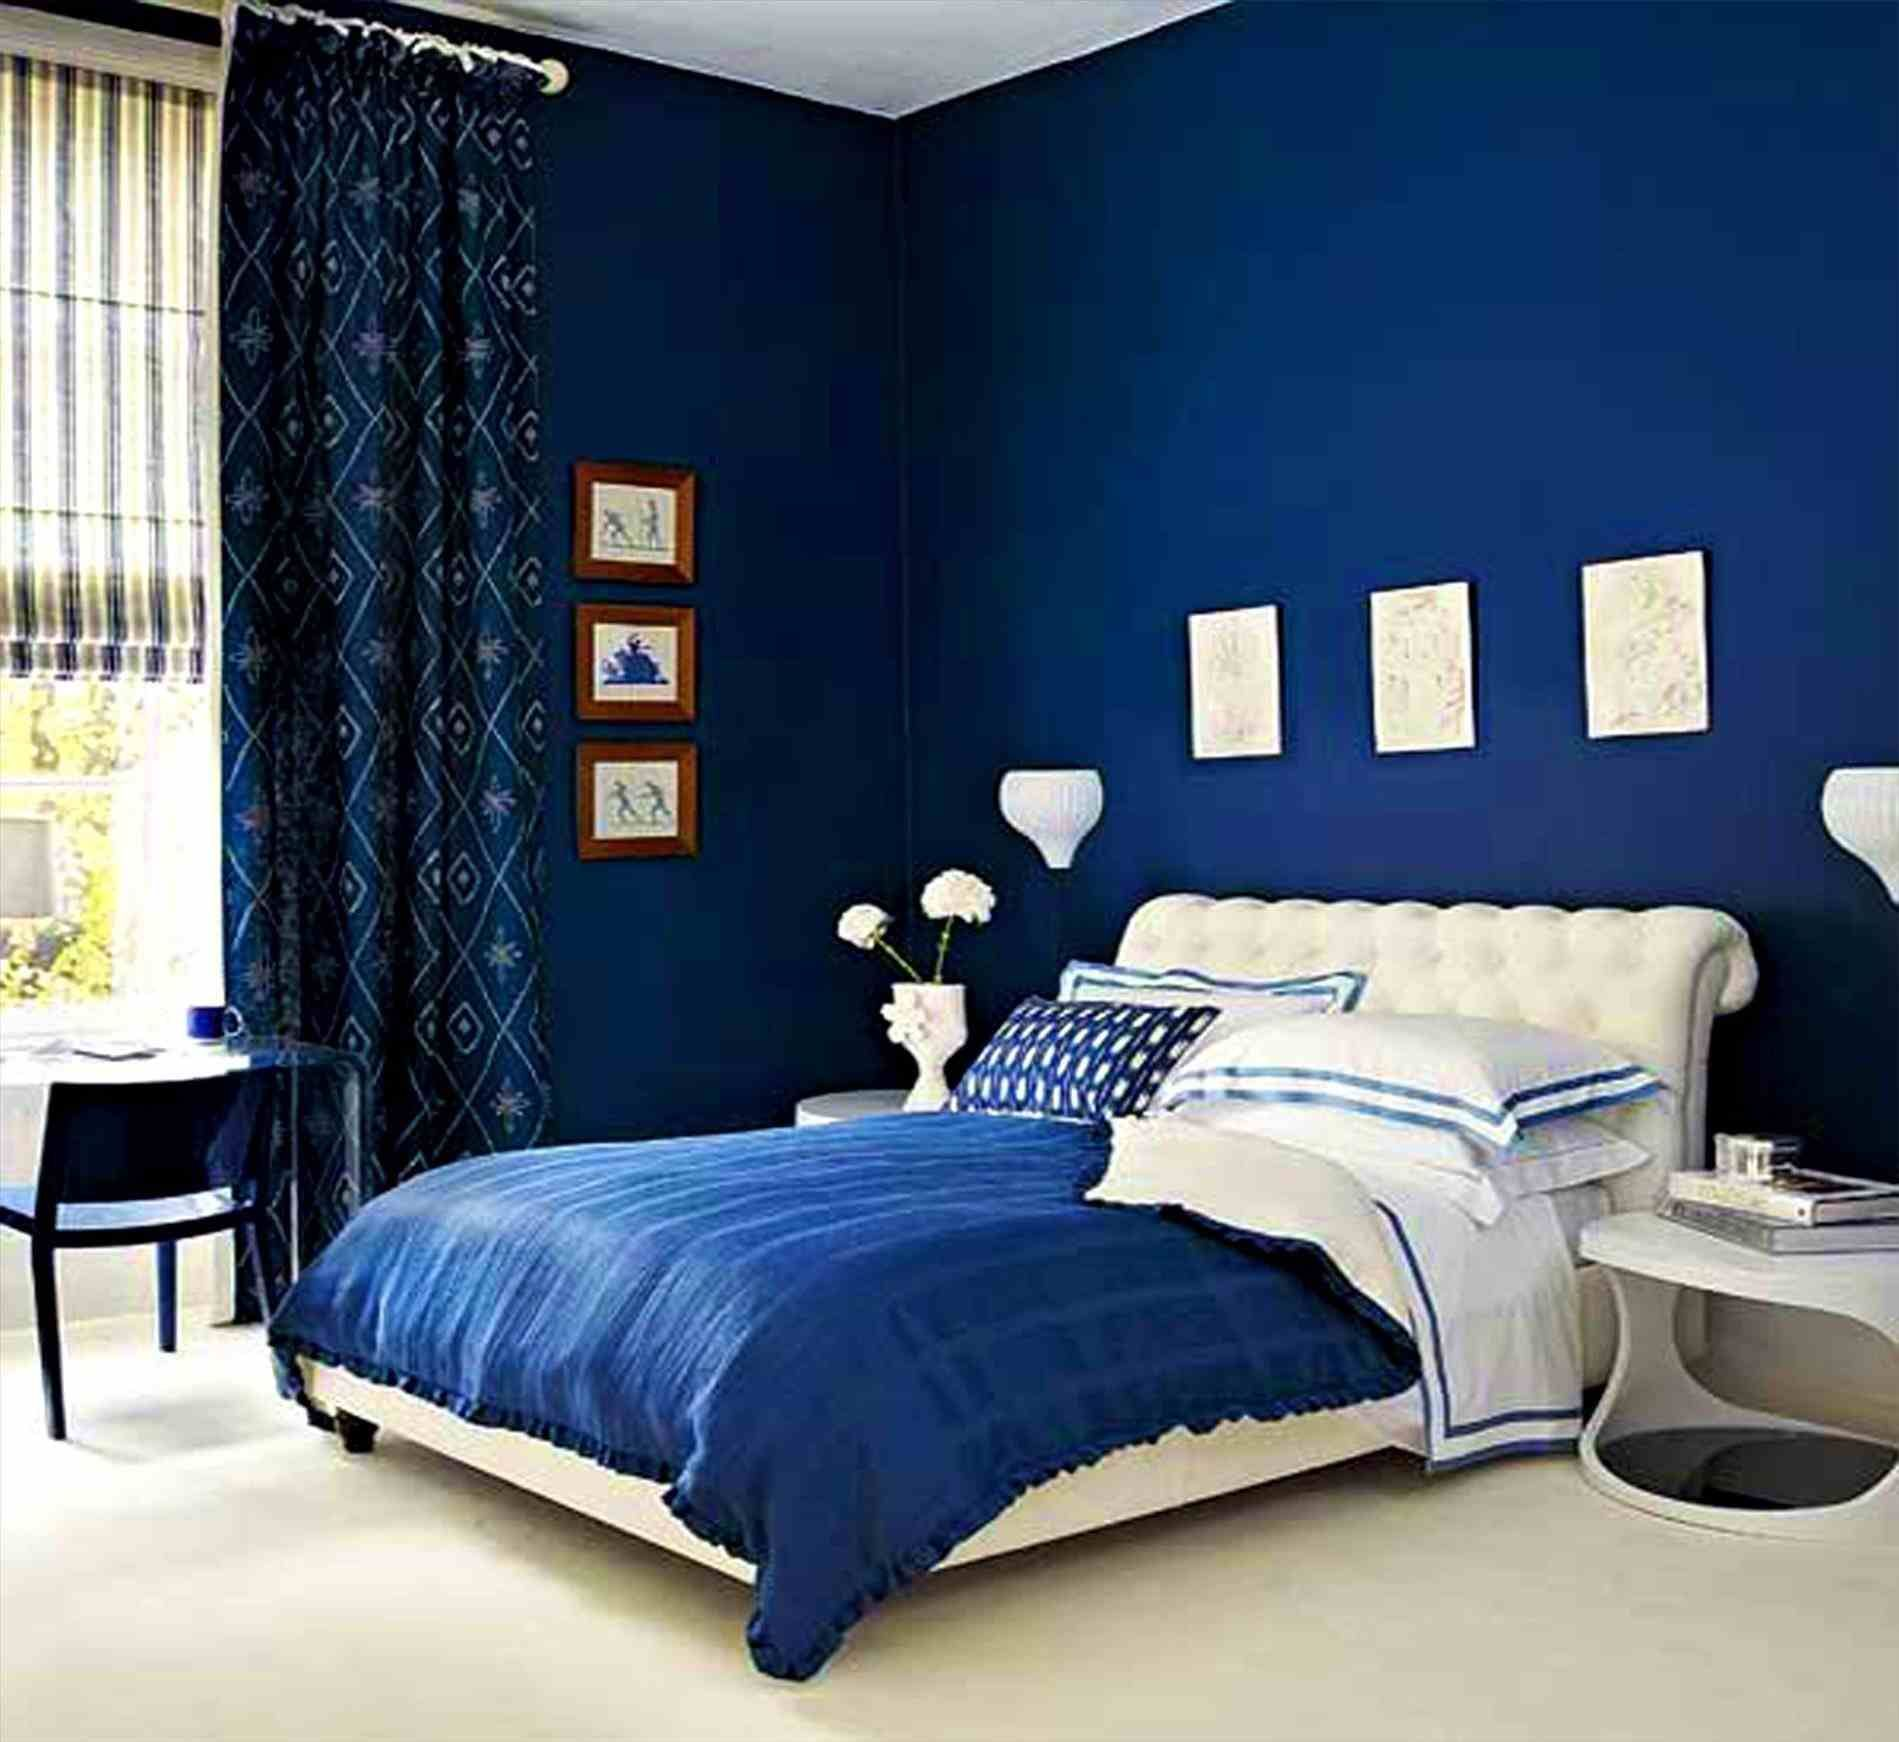 New Post navy blue room ideas for girls visit Bobayule Trending